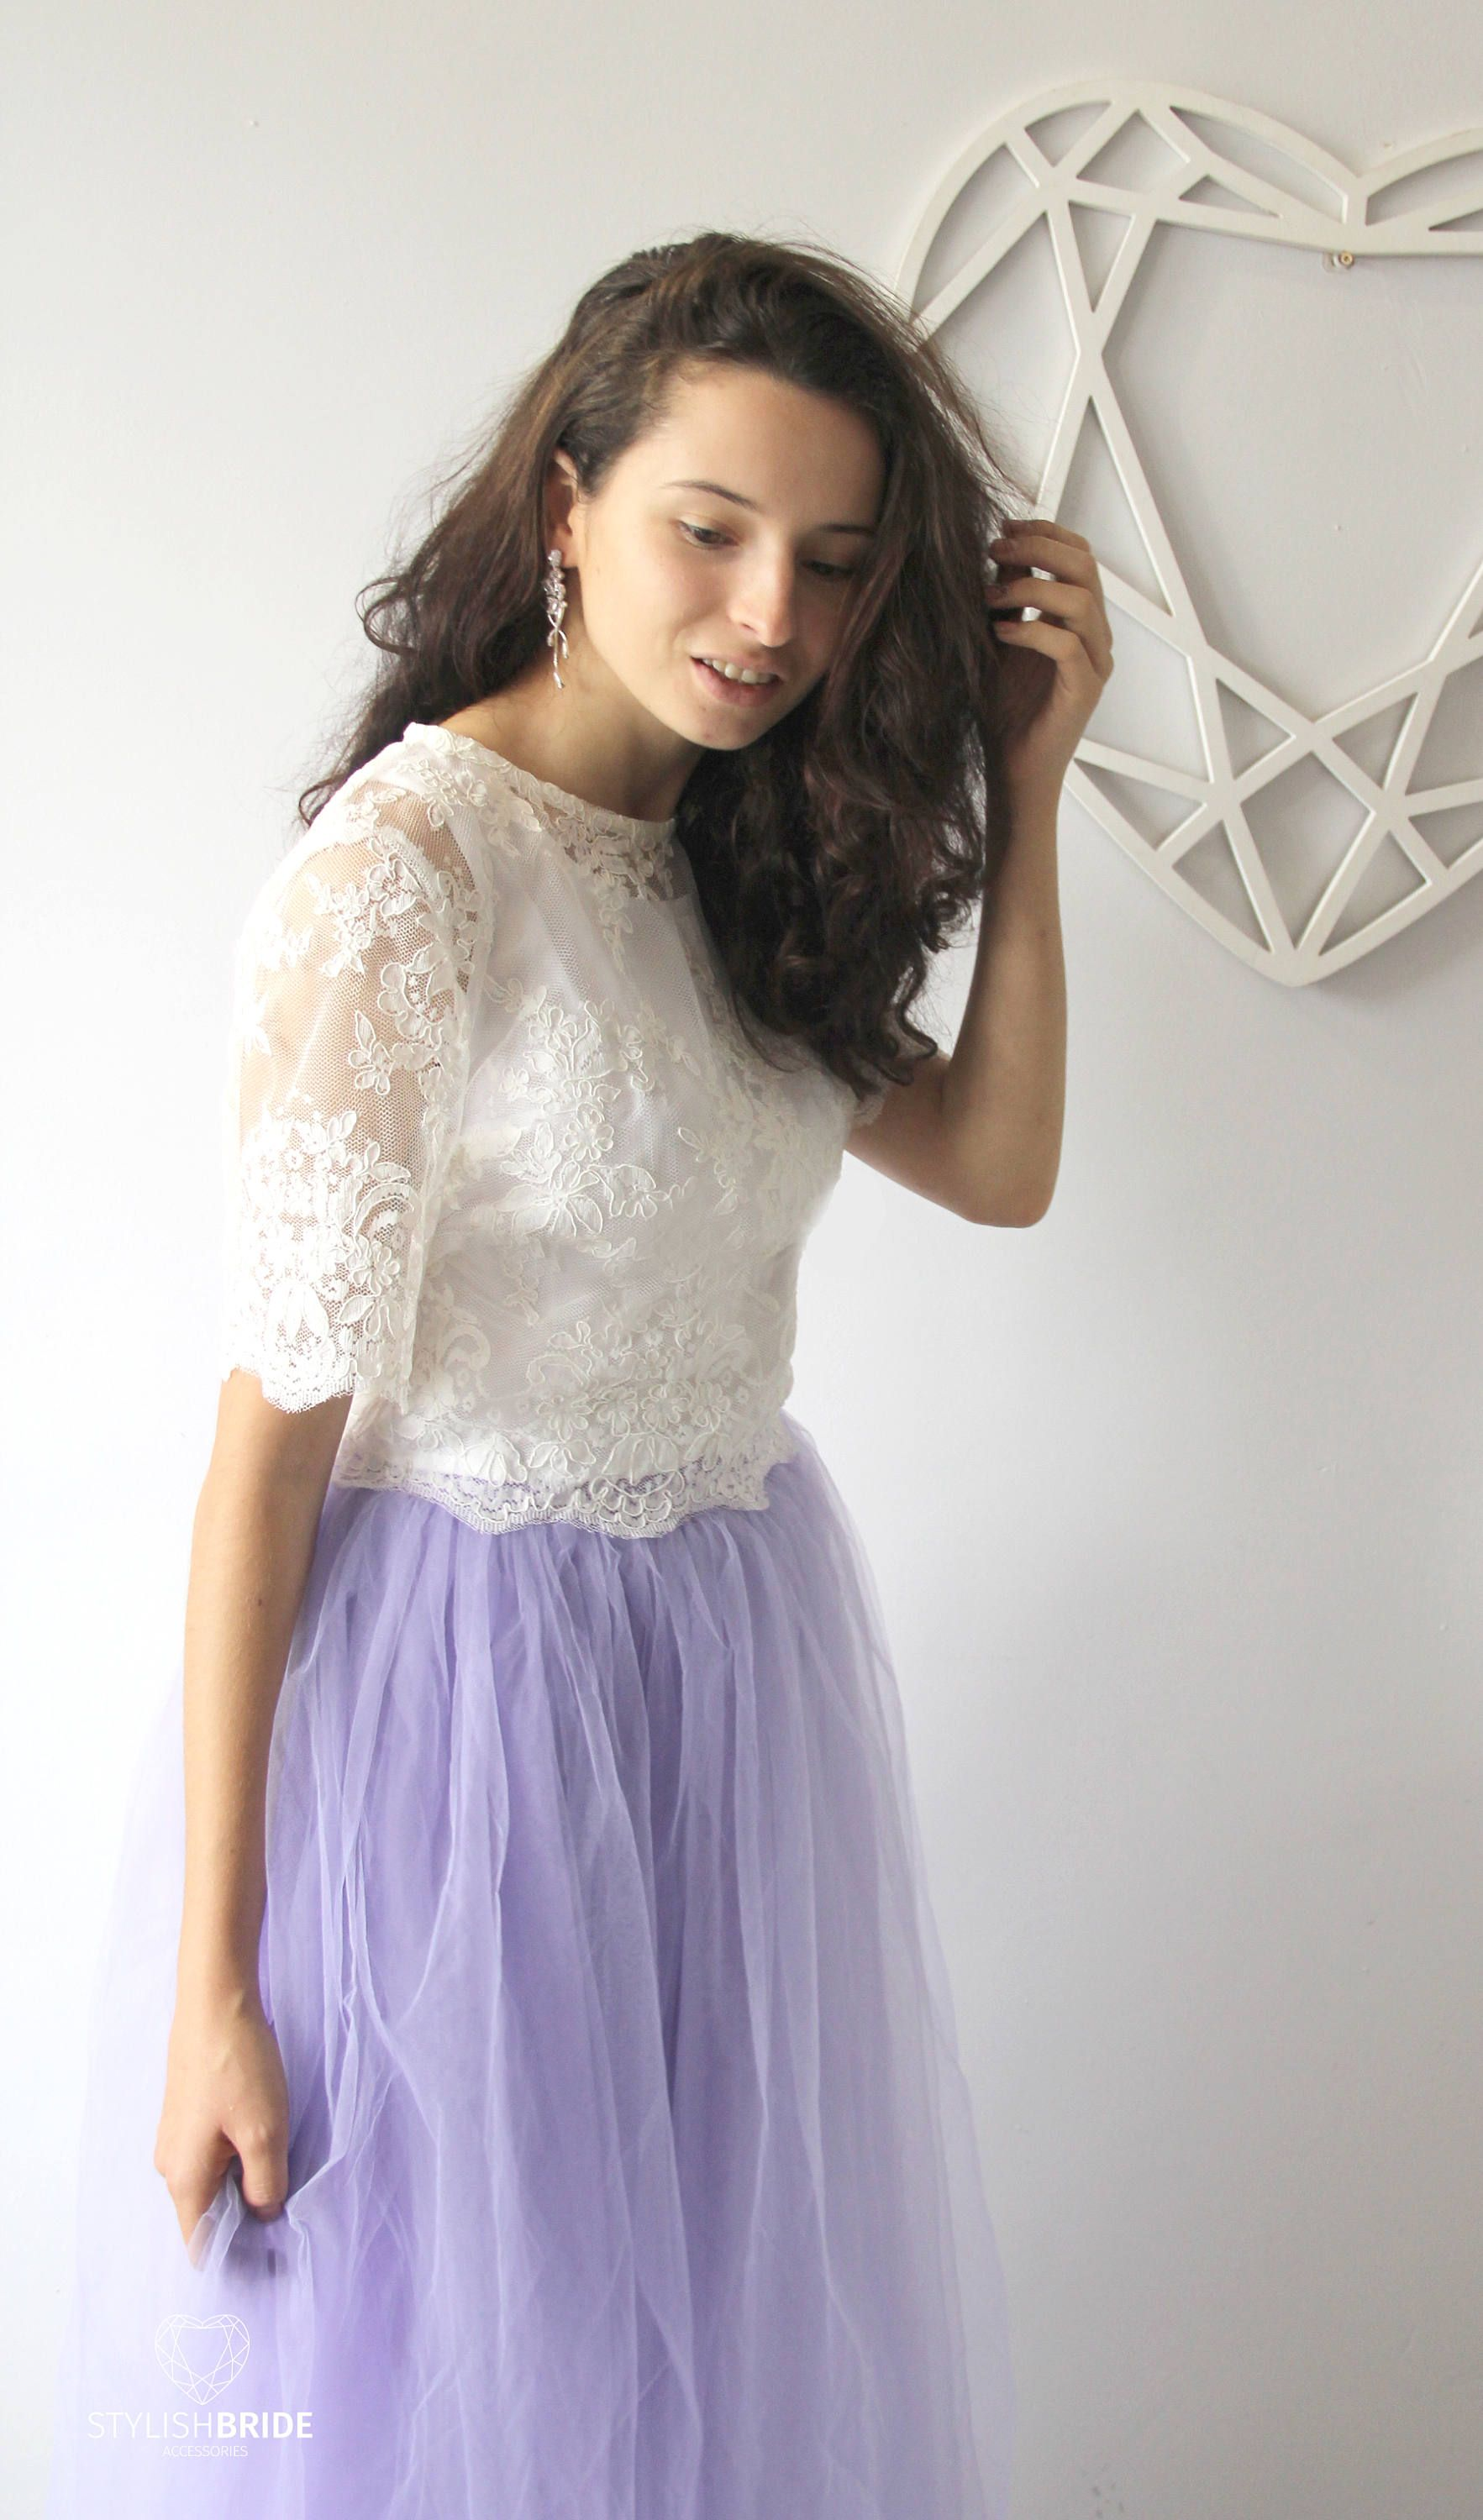 6907e56c88 Belle Dress Tulle Set Lace Crop Top with Sleeves and Tulle skirt ...